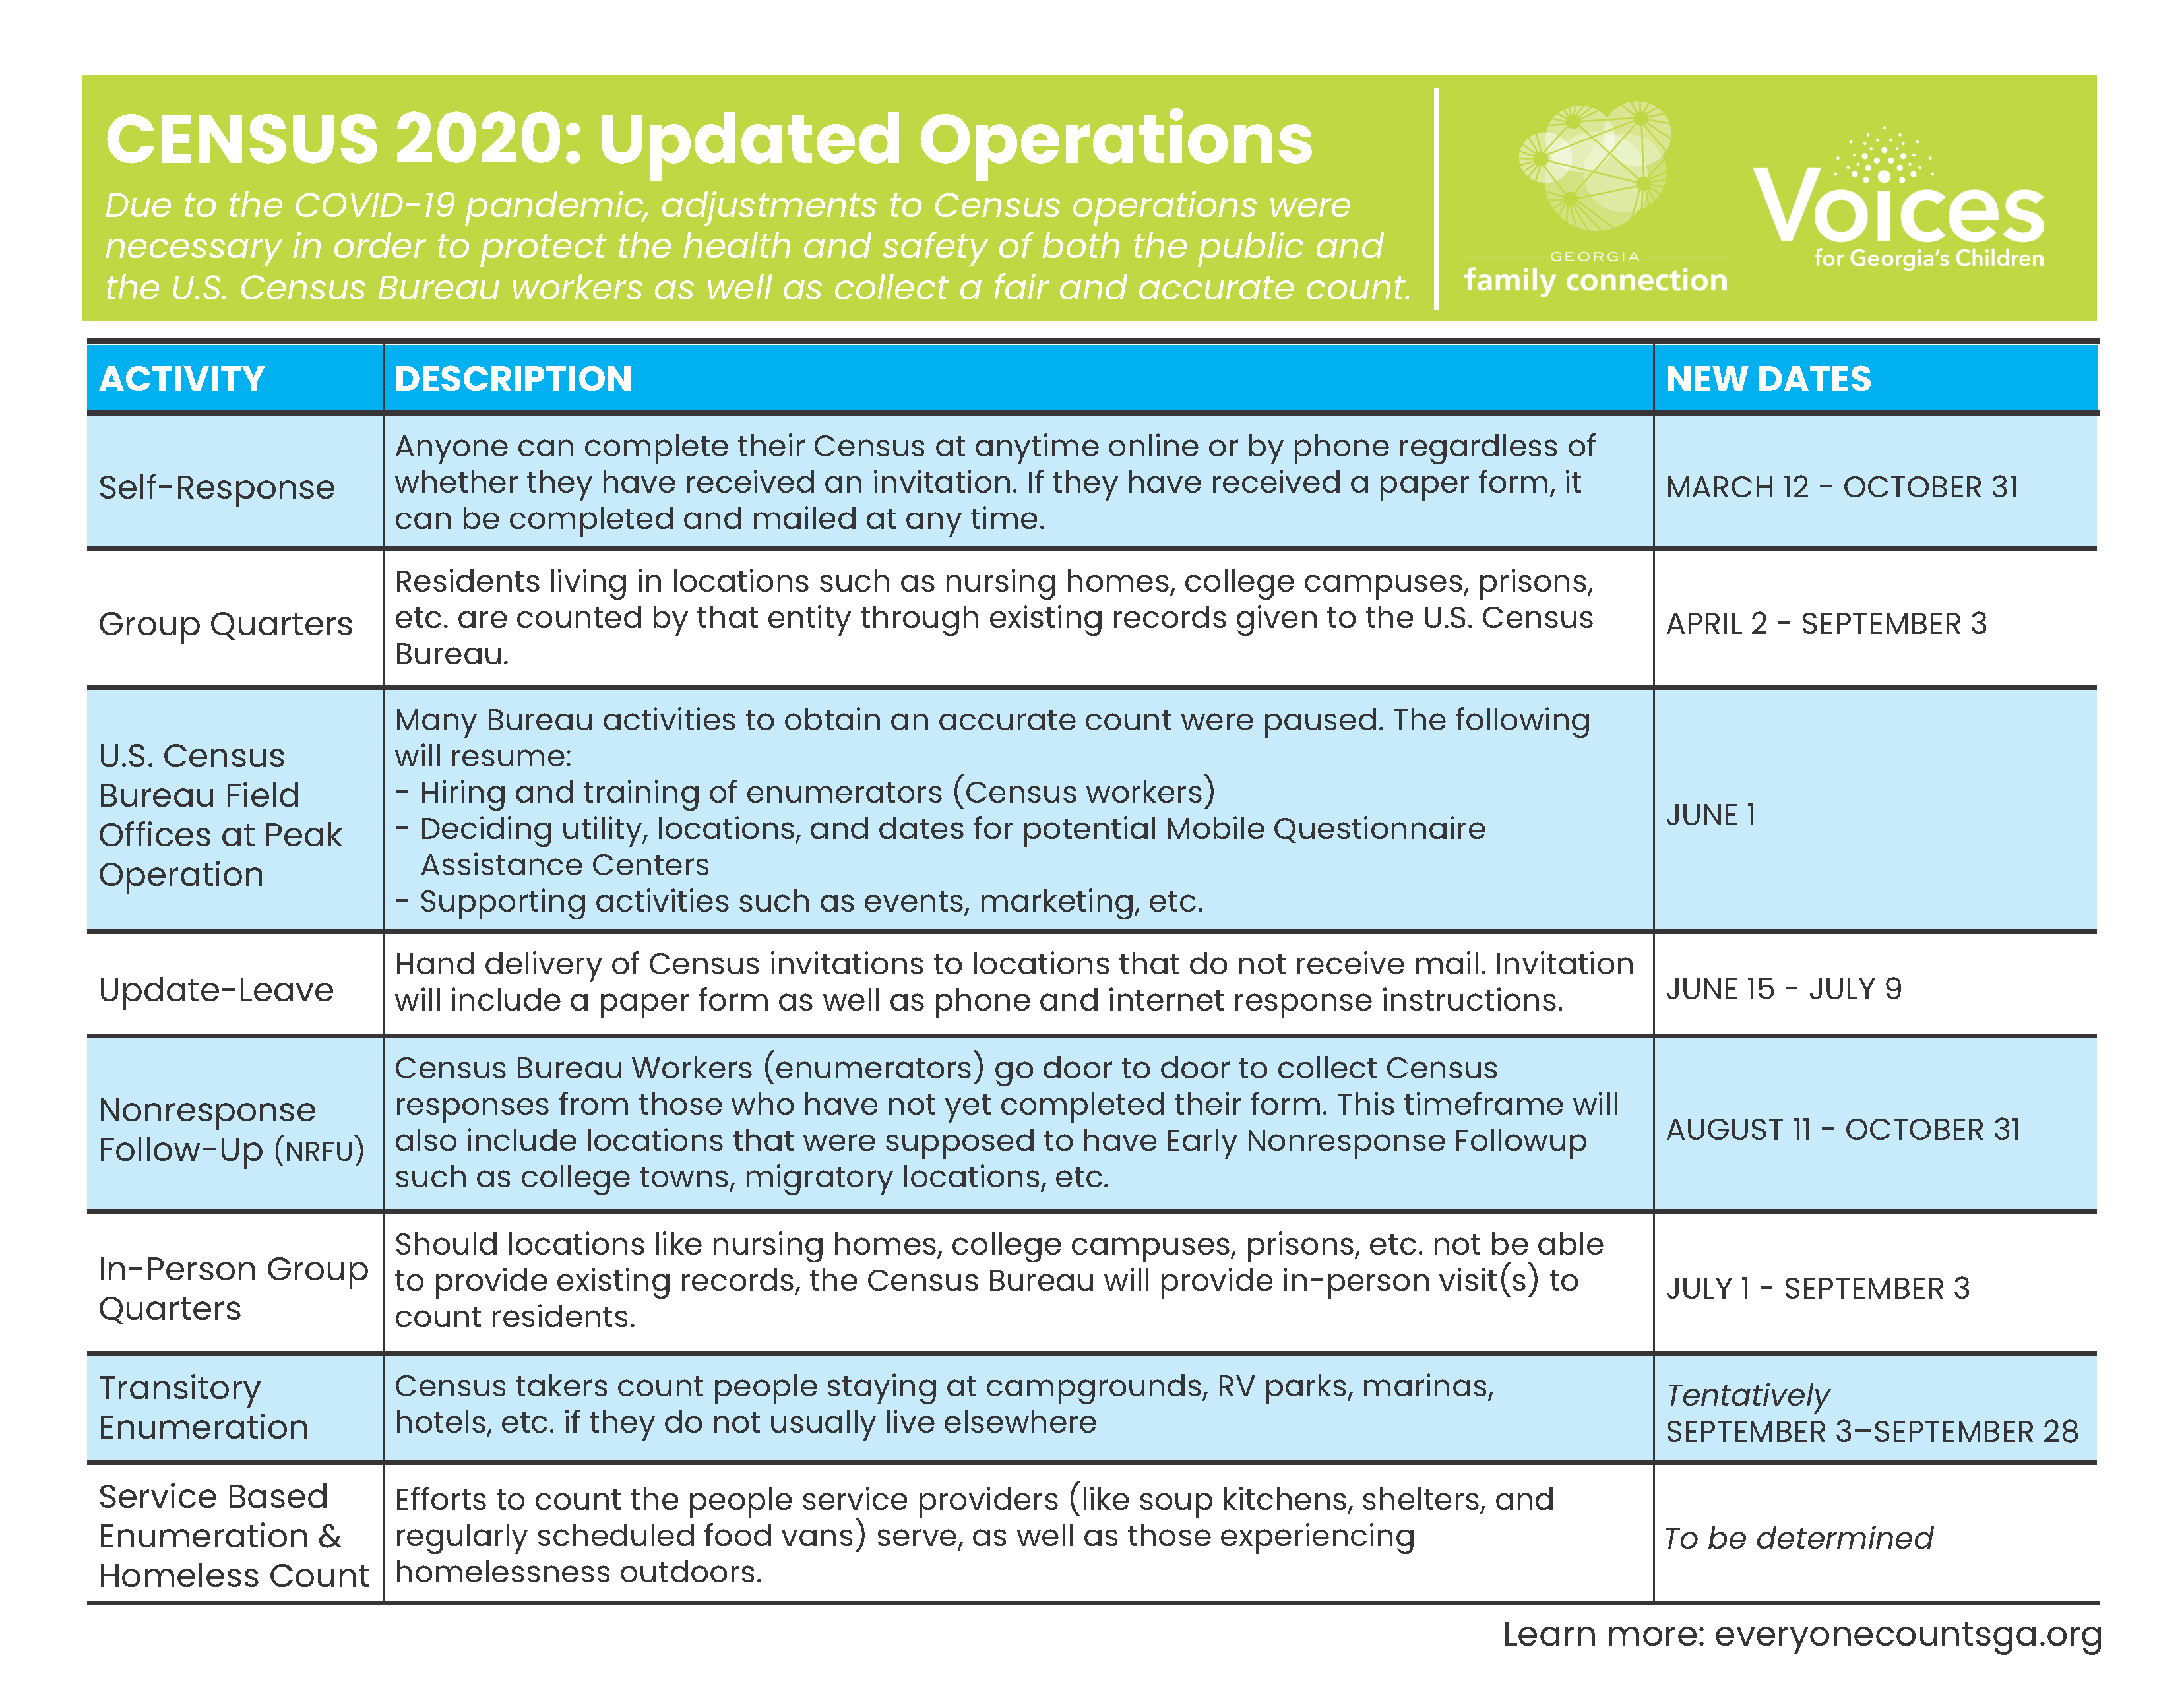 Updated Operations Timeline